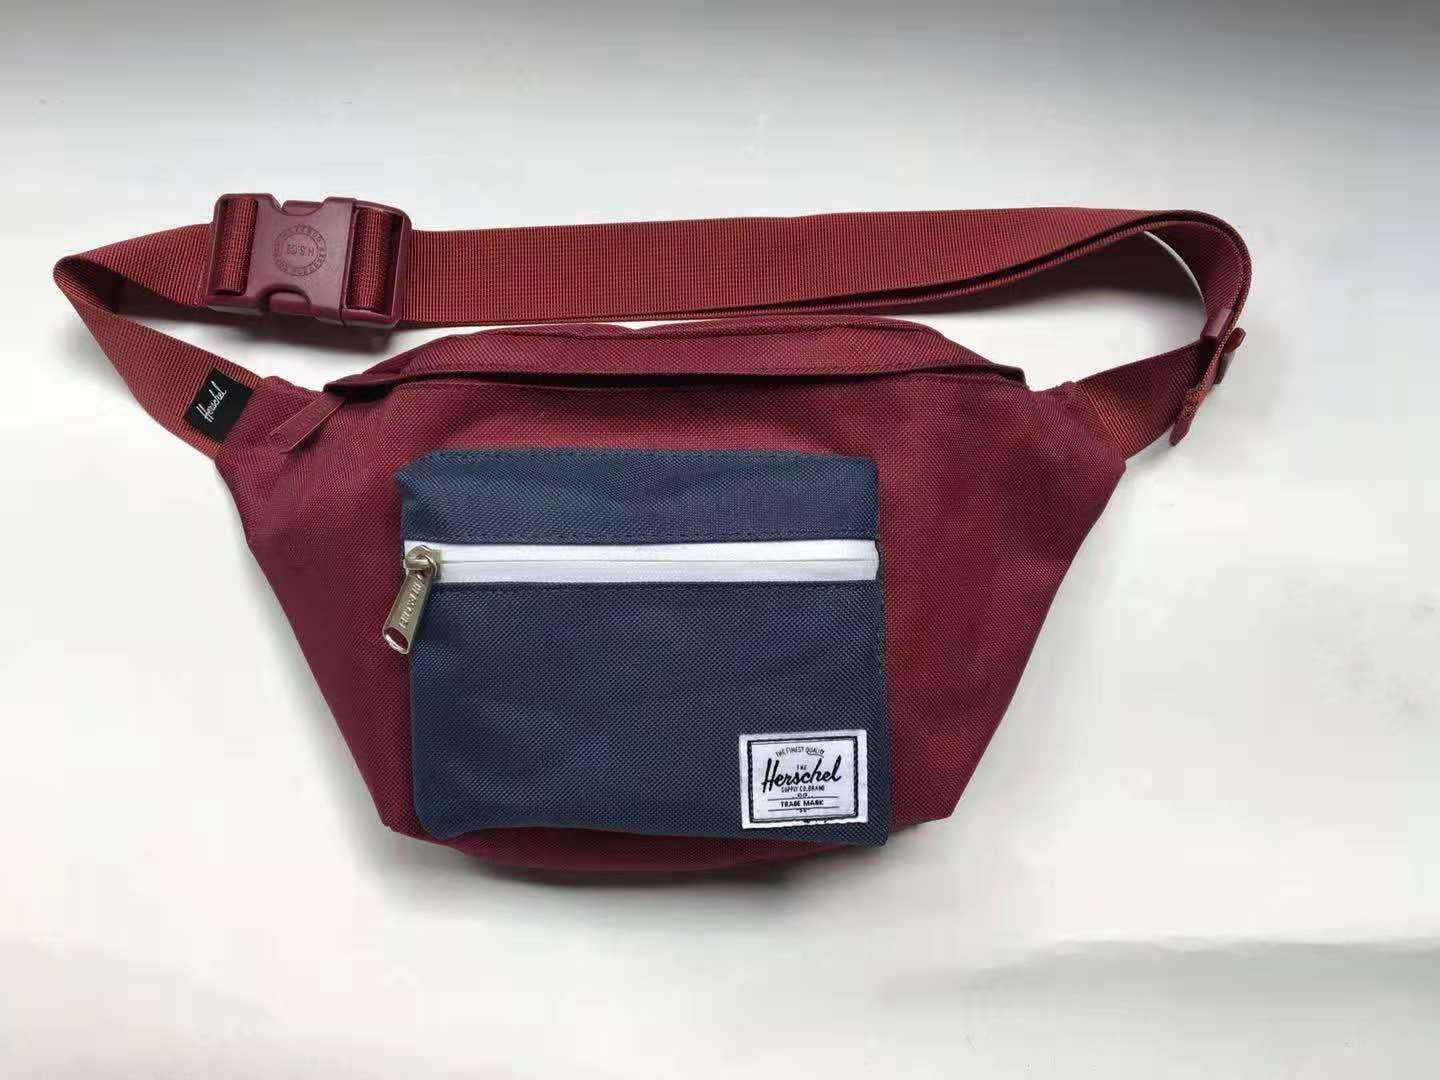 new colors restock!100% authentic herschel 17th hip pouch! eeabd829d26b9